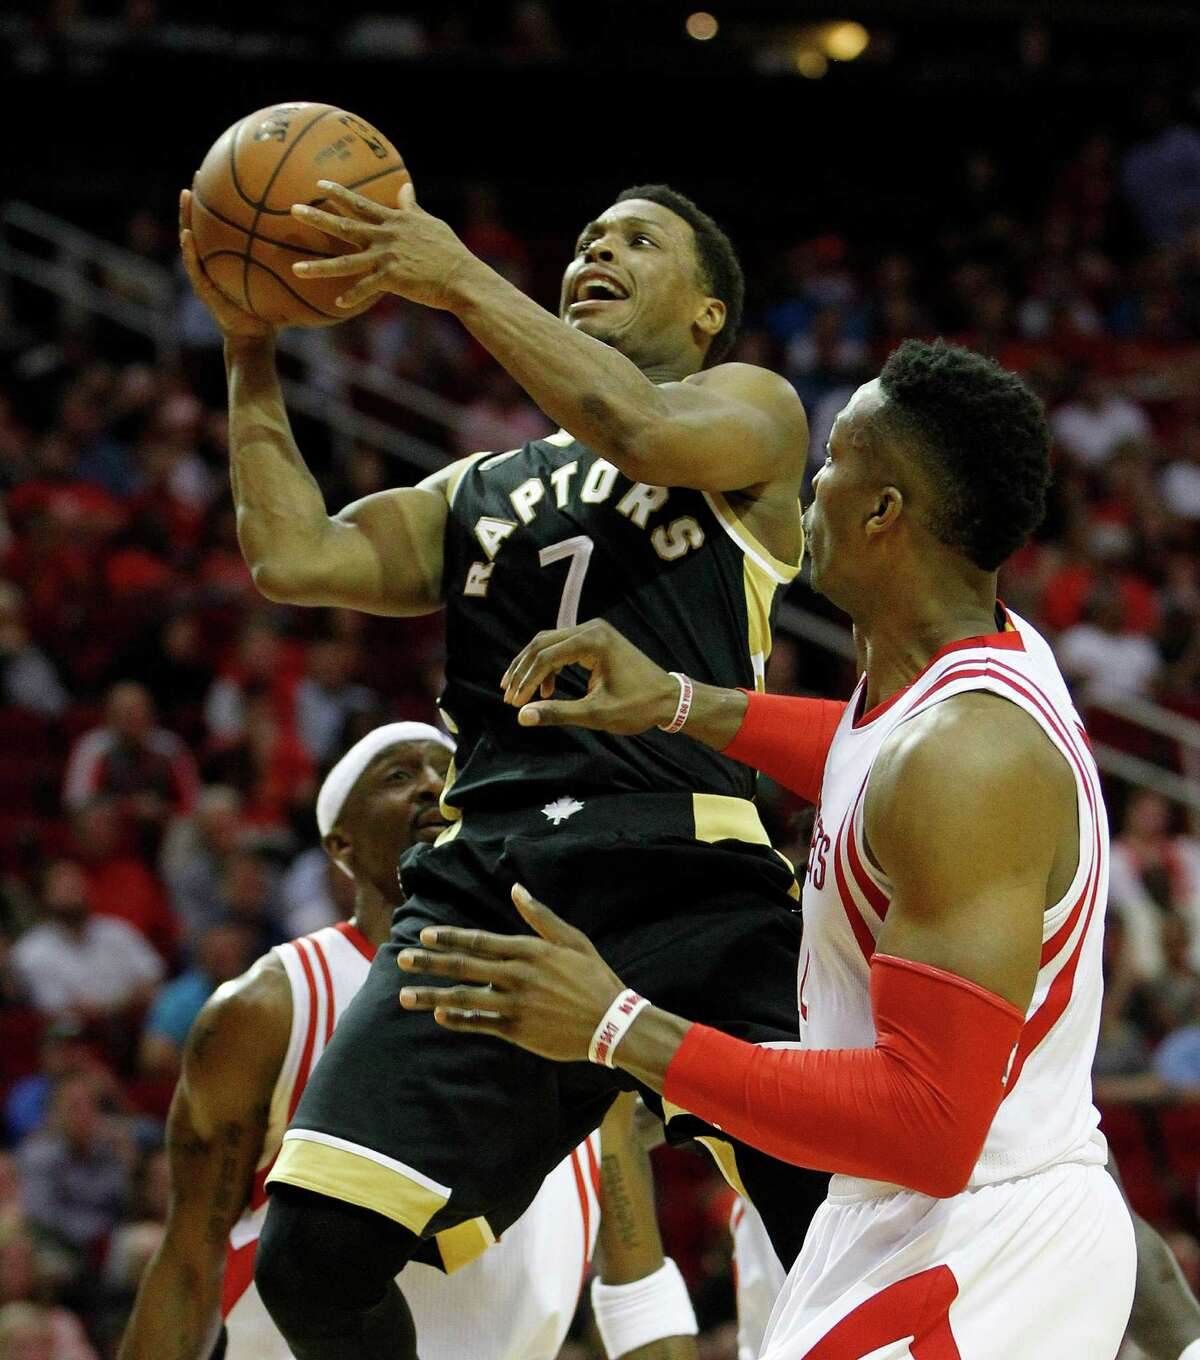 Toronto Raptors guard Kyle Lowry (7) goes up for a basket against Houston Rockets center Dwight Howard (12) during the second half of an NBA basketball game at Toyota Center, Friday, March 25, 2016. Rockets won 112-109.